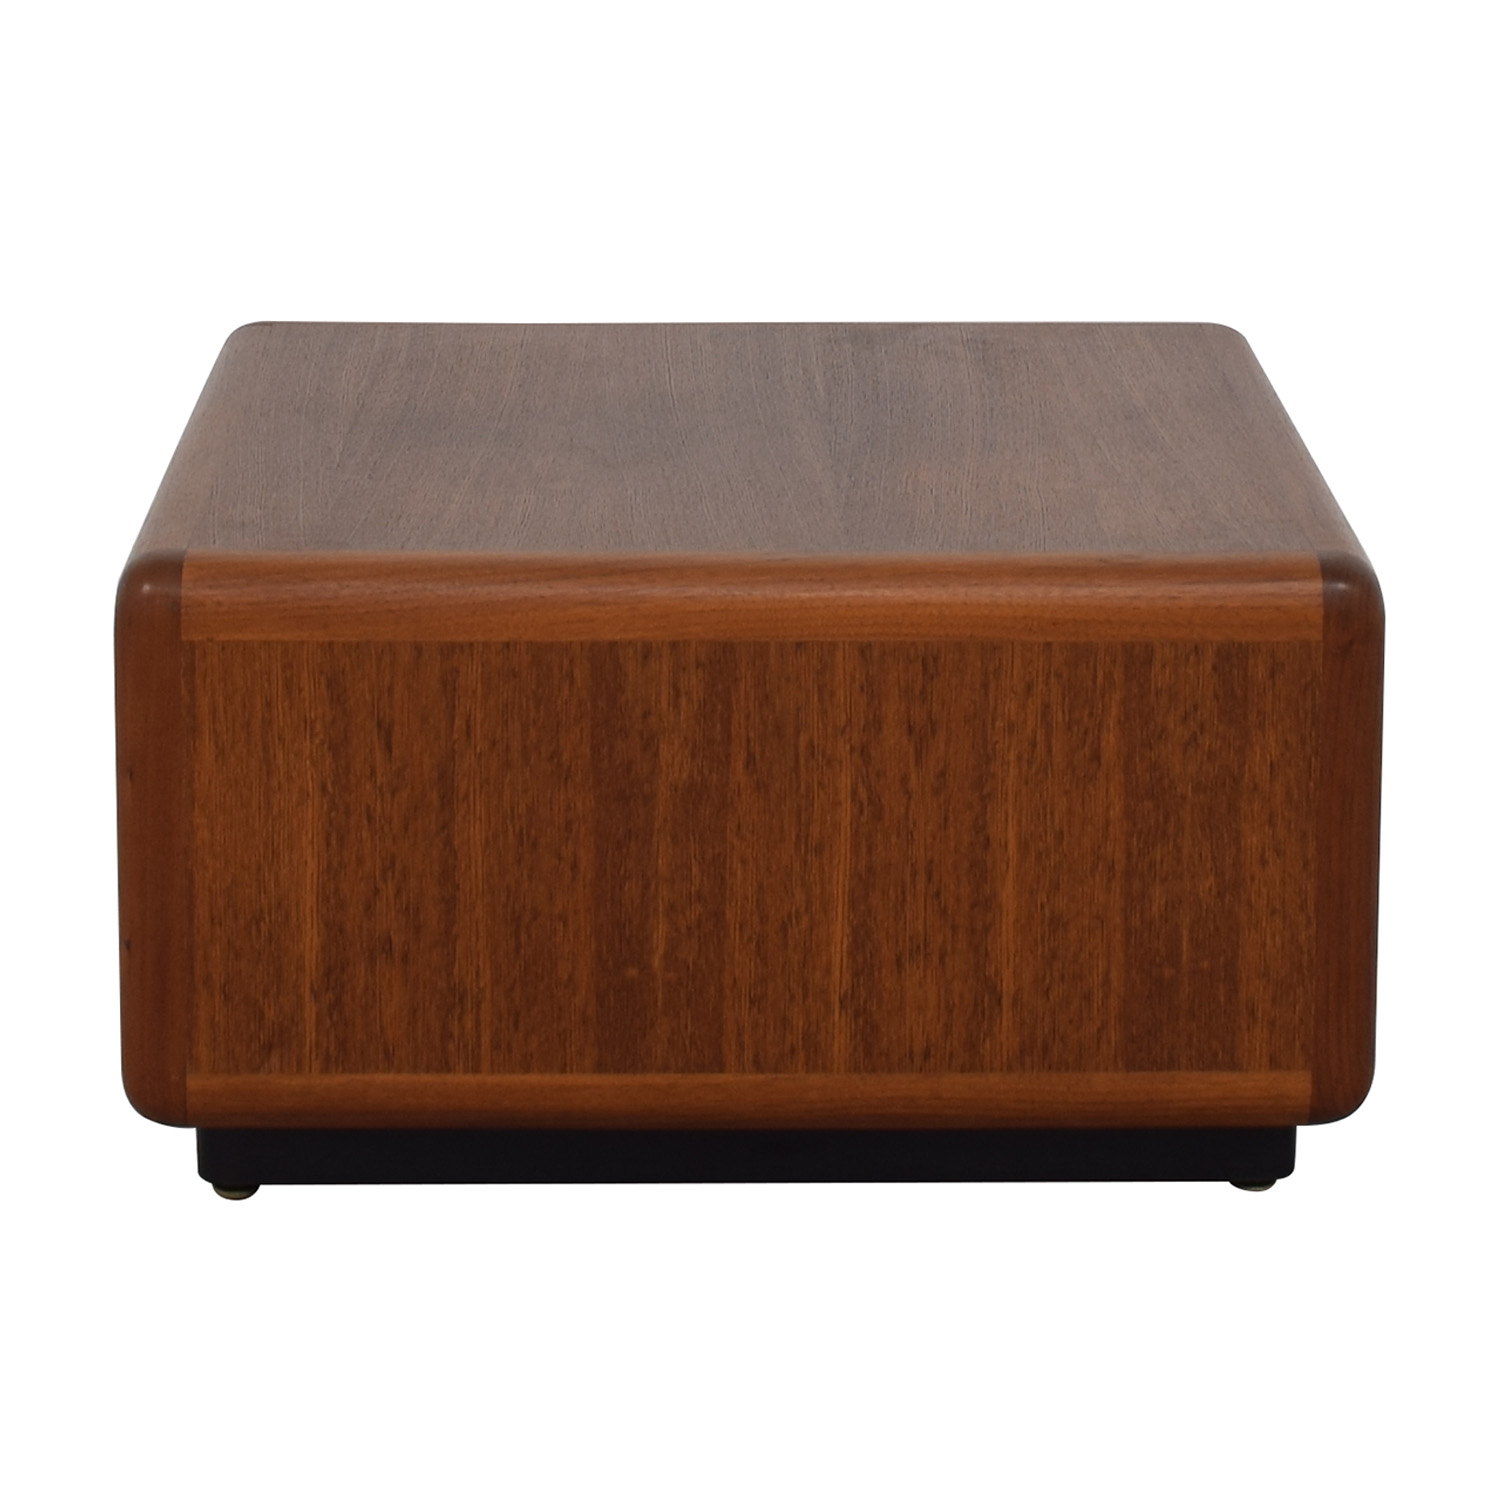 Wood Rectangular End Table dimensions